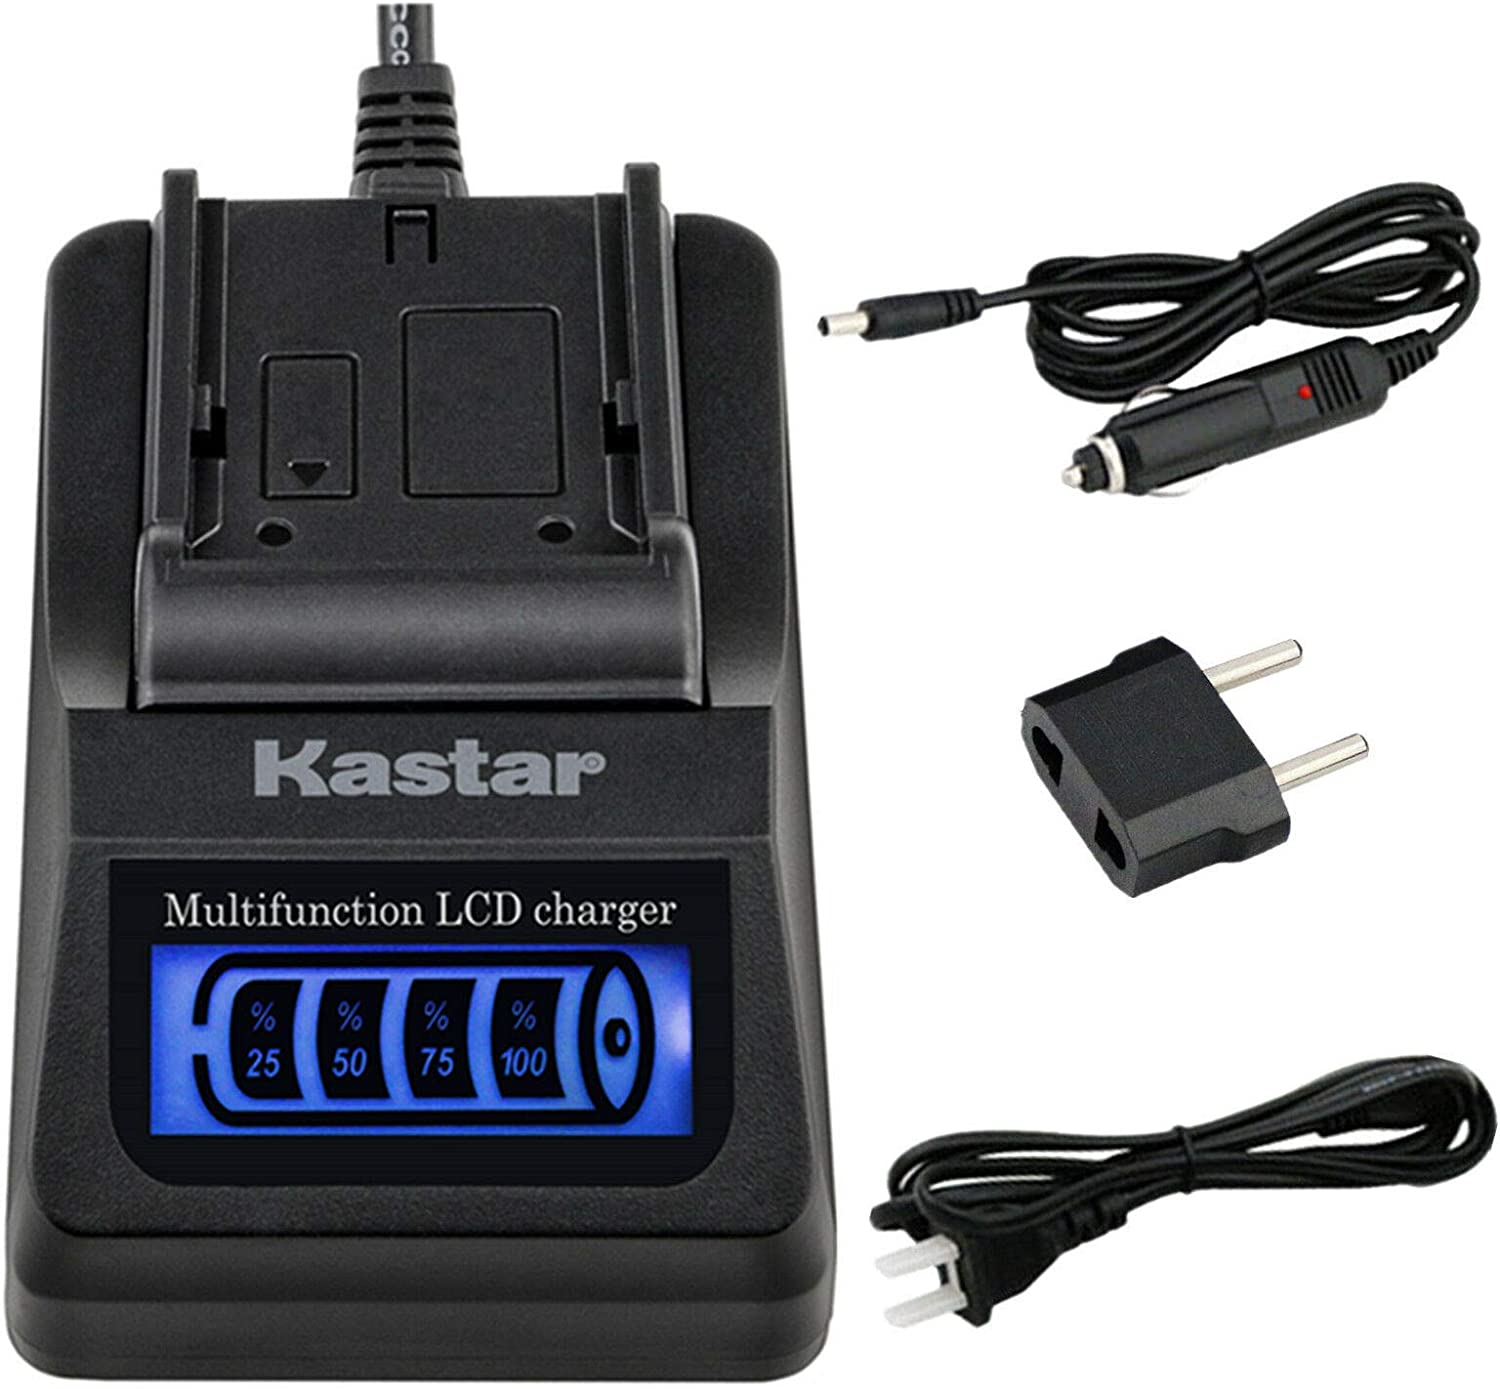 Kastar LCD Quick Charger with Car Adapter /& USB Output Compatible with Canon BP-970 BP-970G BP-975 BP-945 BP-950G BP-955 XH-G1 HDV XH-G1S XH-G1S HD XL-H1A XL-H1S XL-H1S HD XL-1 XL-1S XL-2 XH-A1SE HDV